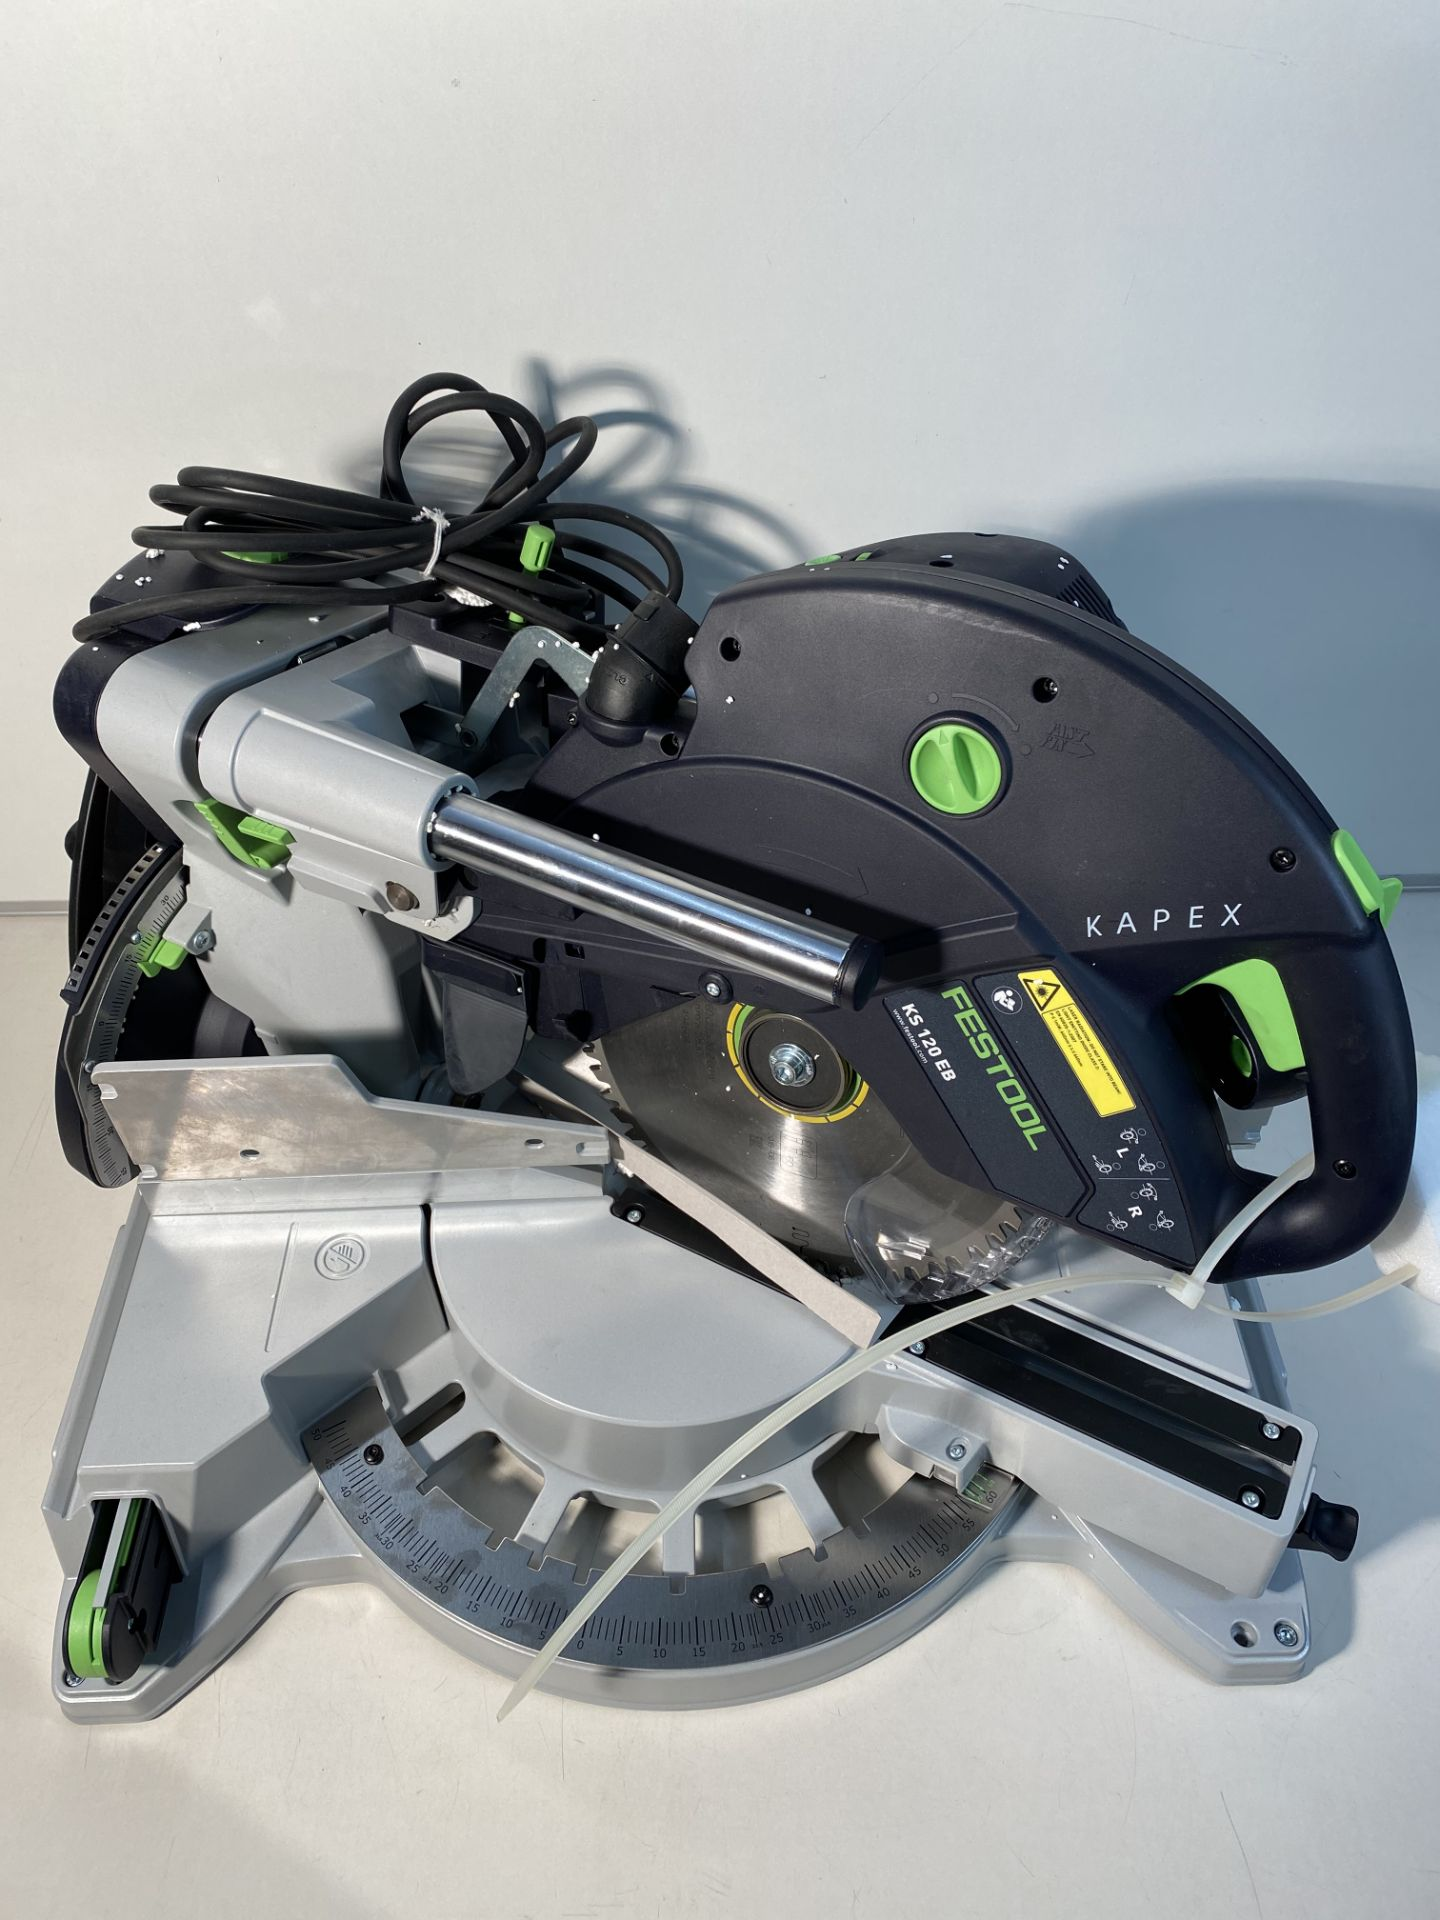 Lot 1 - Festool Sliding compound mitre saw KAPEX KS 120 REB 240V